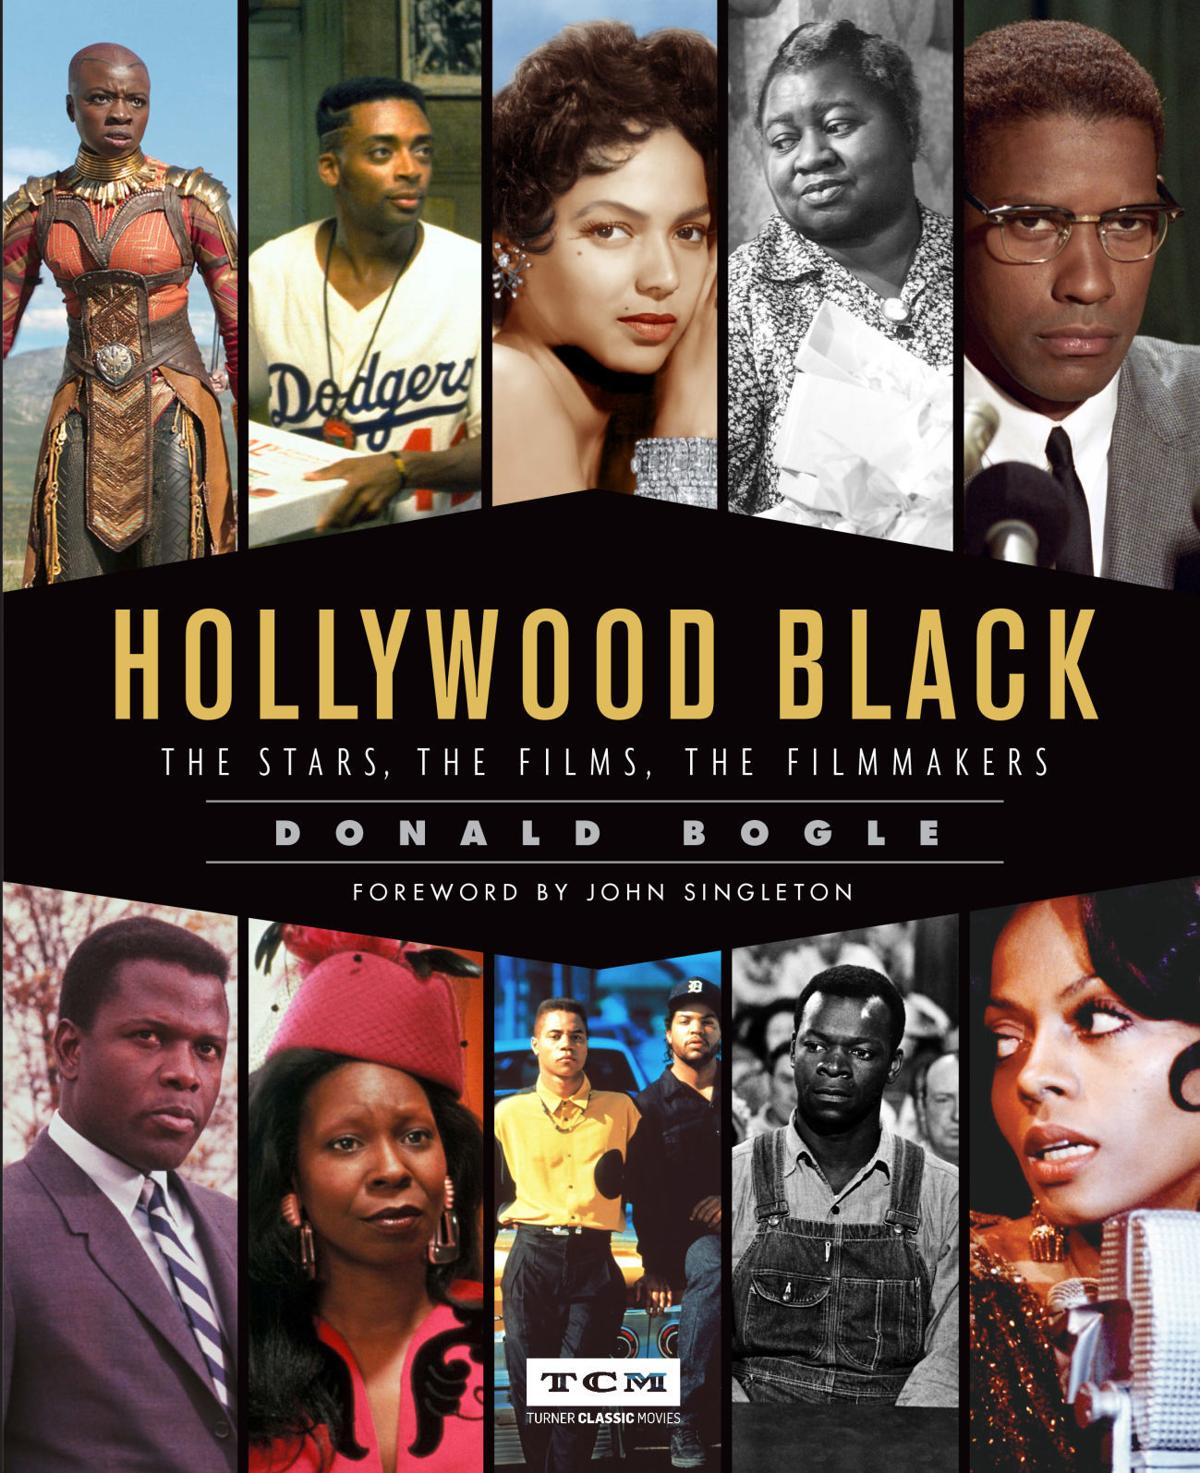 """Hollywood Black: The Stars, The Films, The Filmmakers"" is the ninth book by Donald Bogle"